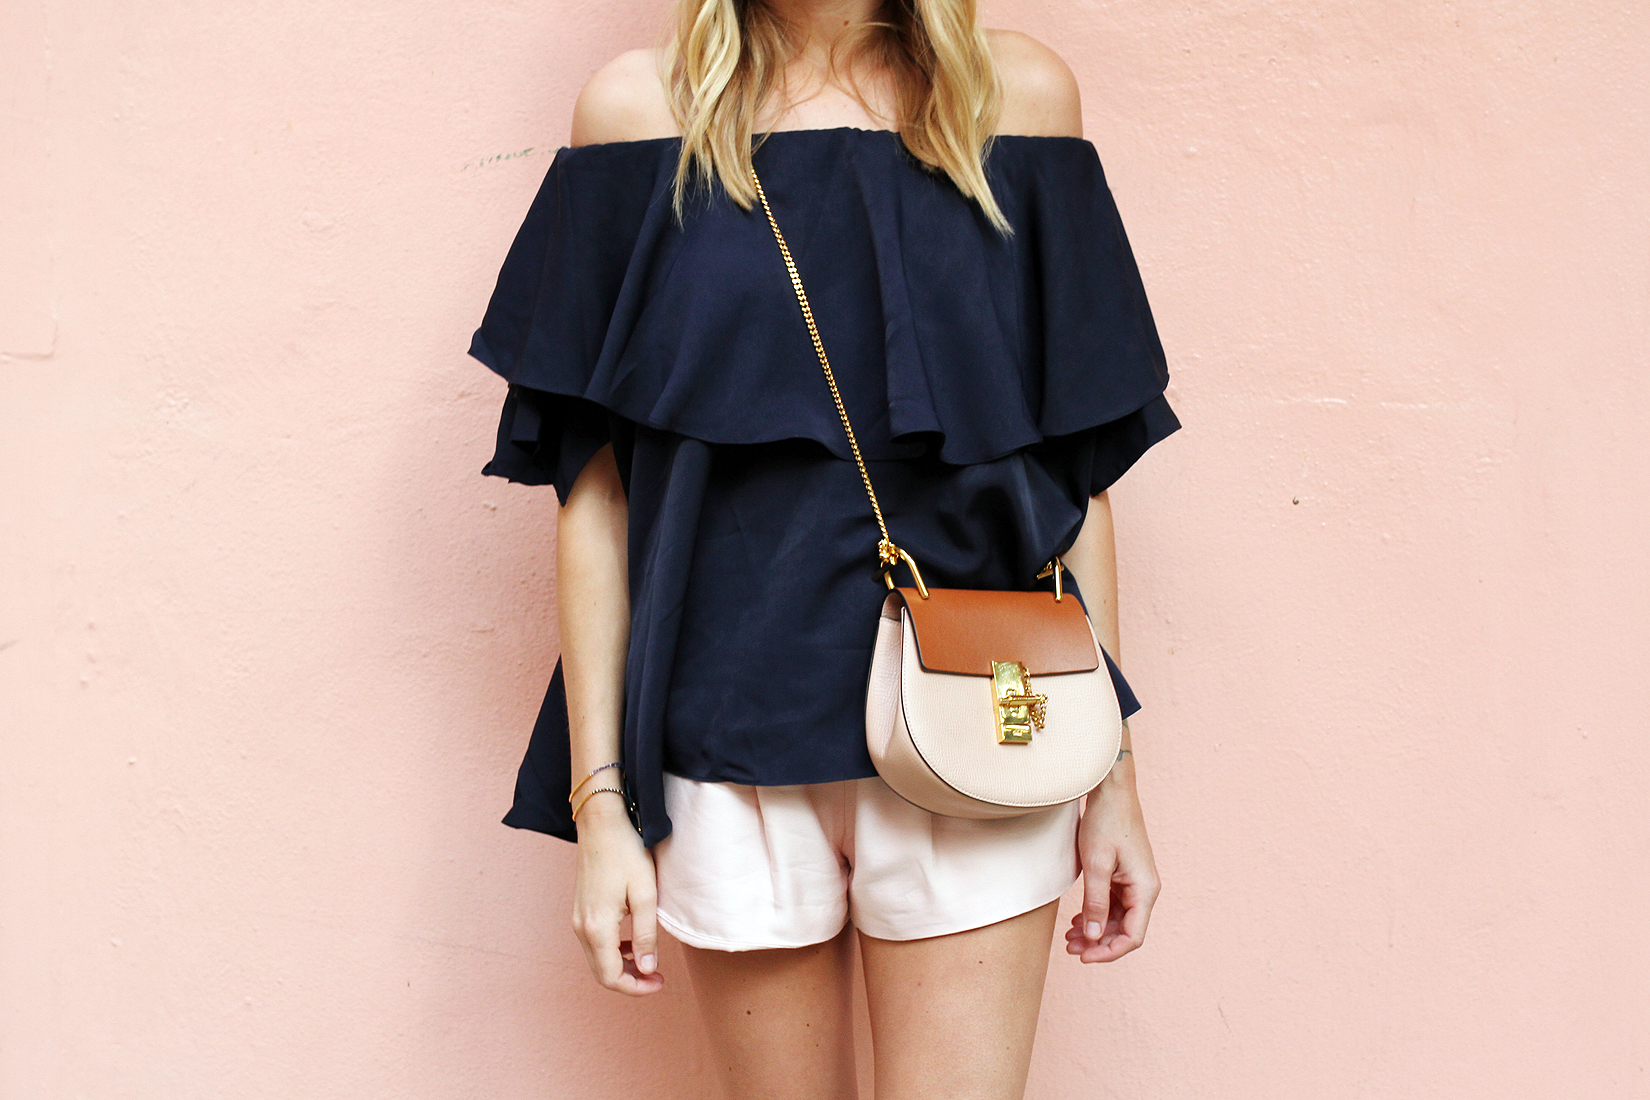 fashion-jackson-chloe-drew-colorblock-handbag-mlm-label-maison-off-the-shoulder-top-pink-shorts